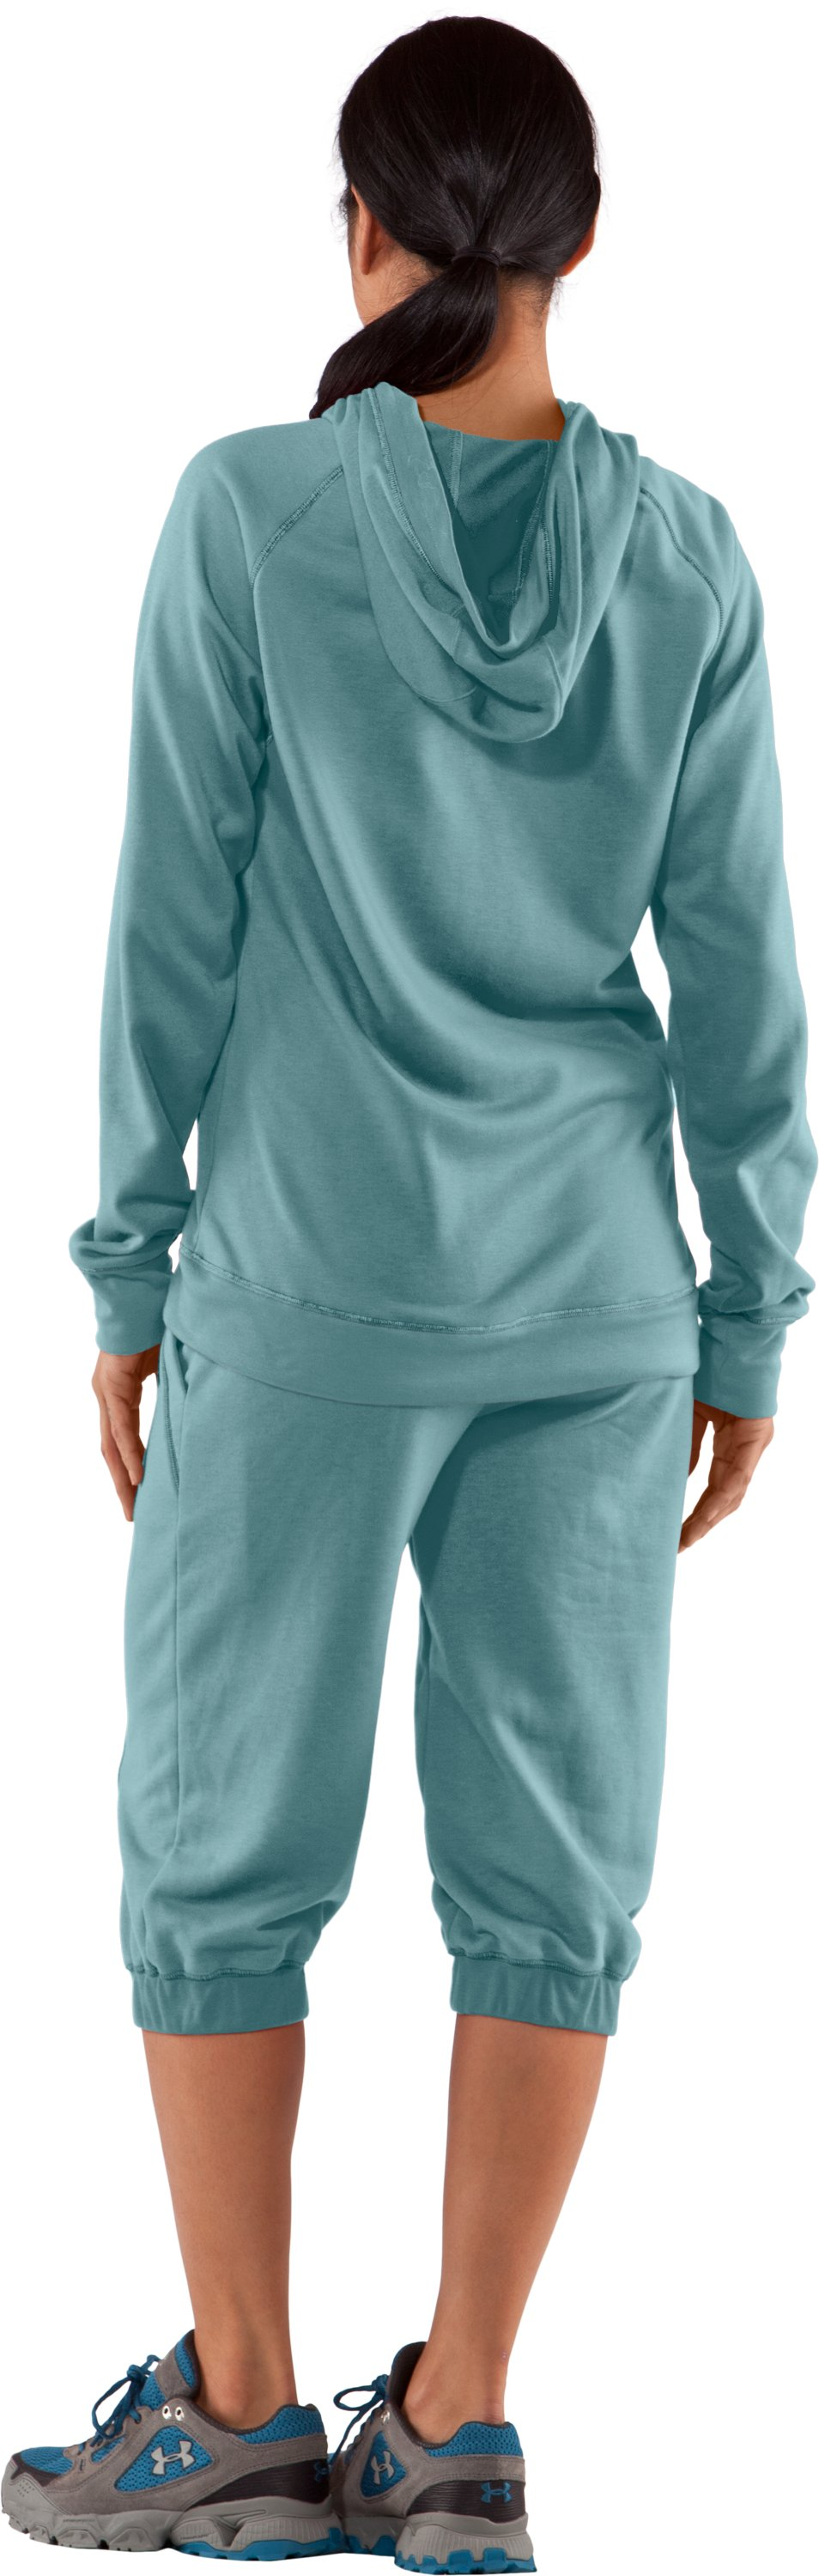 Women's Terry Hoodie, Seaport, Back